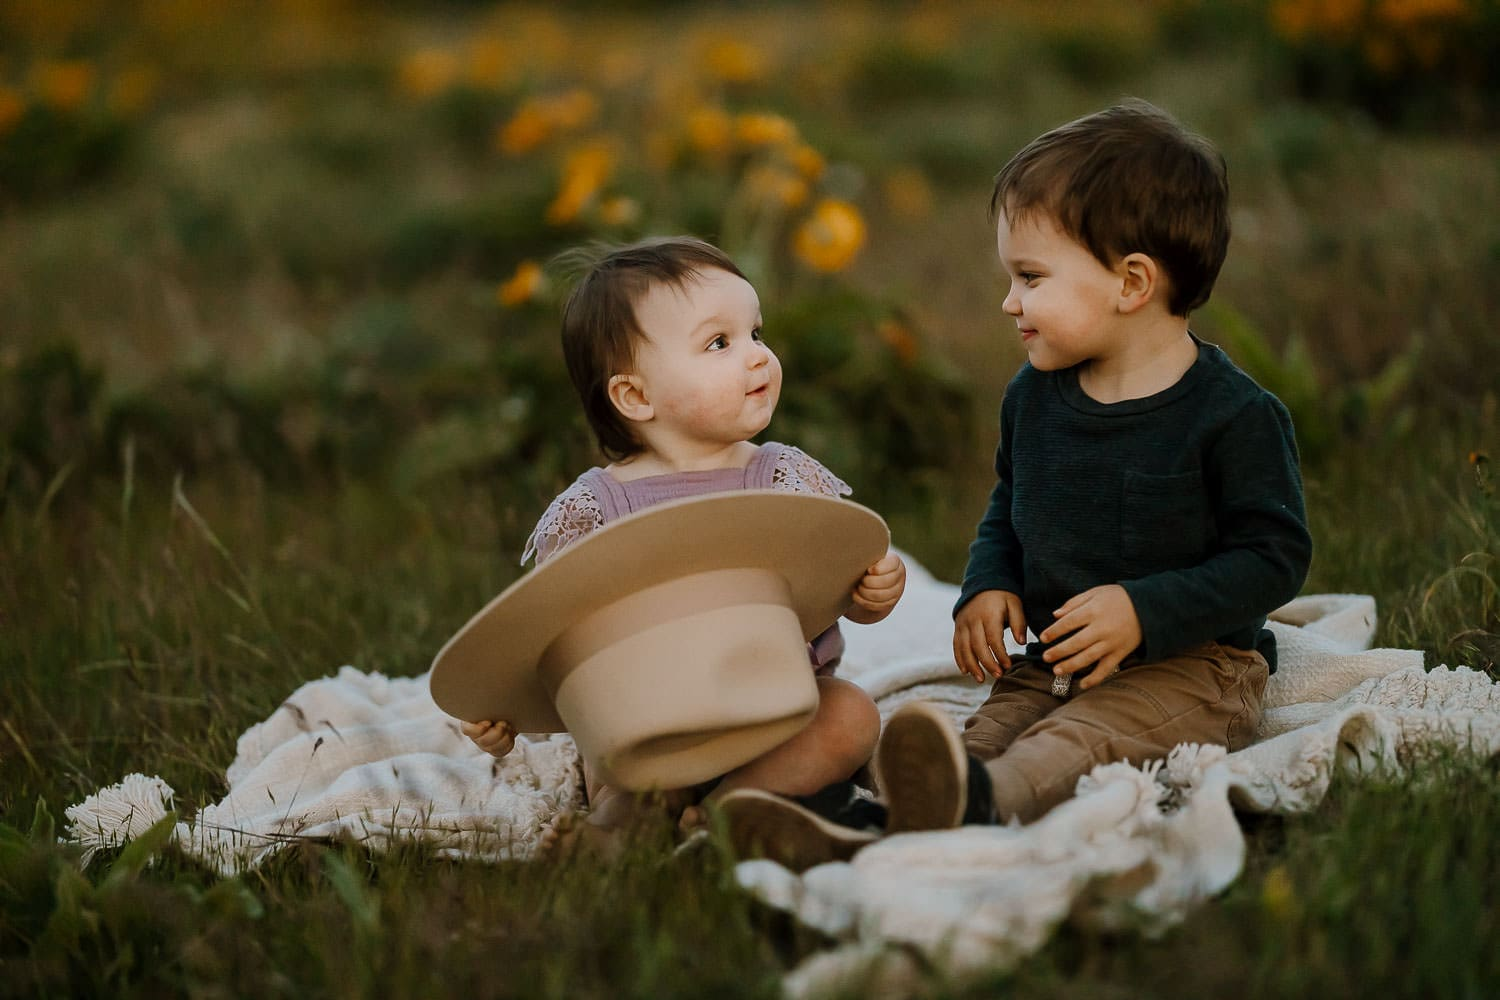 siblings smiling at each other